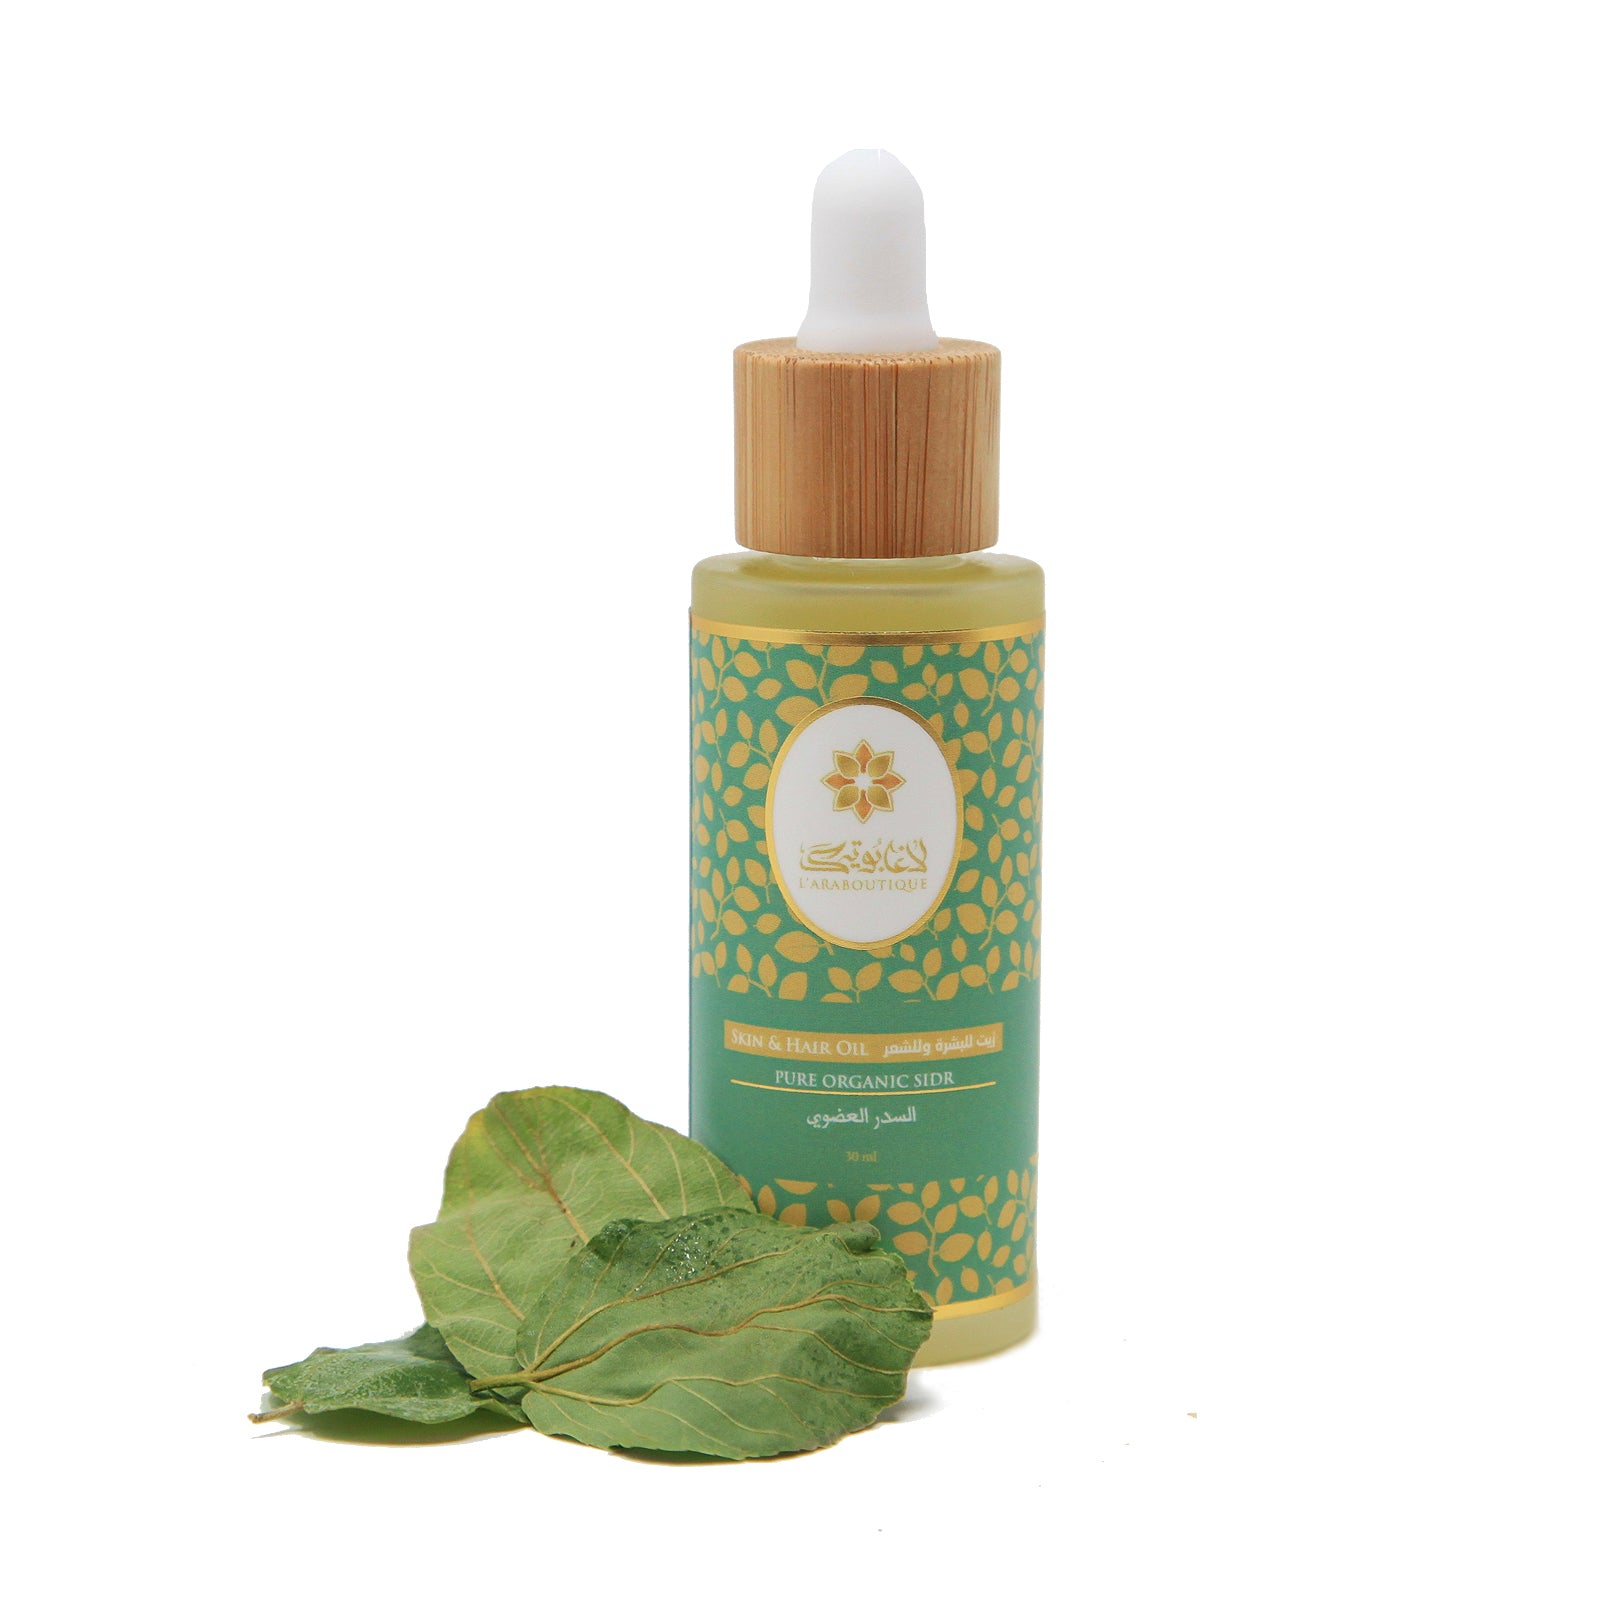 Pure Organic Sidr Oil - 30ml